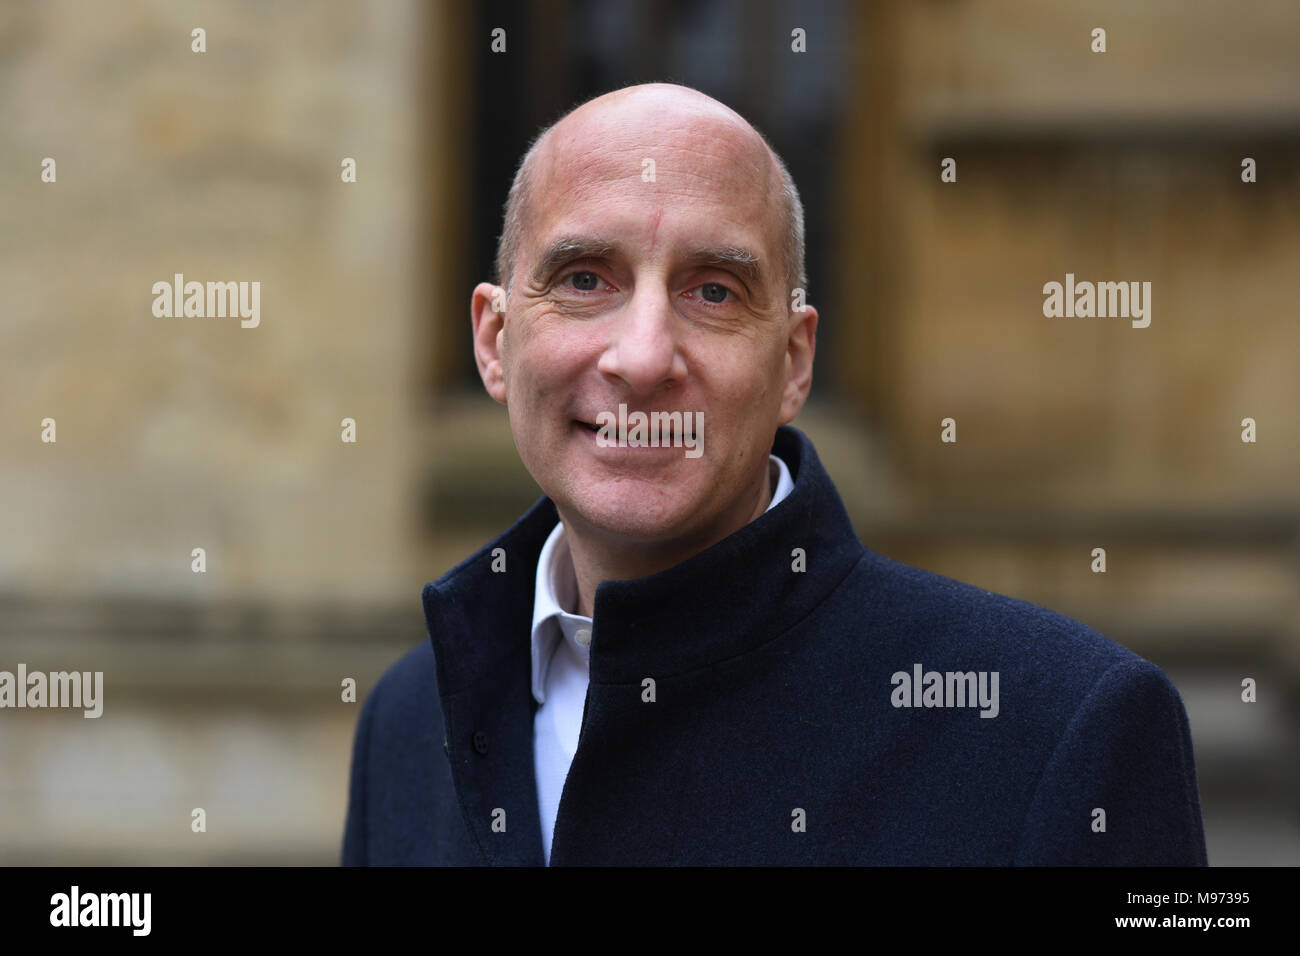 Oxford, UK. 23rd Mar, 2018. Oxford, UK. 23rd March, 2018. Andrew Adonis at Sheldonian Theatre for  FT Weekend Oxford Literary Festival.23 rd March 2018. Oxford . ' What Europe Does For Us and How to Keep the Best of It'.   Credit: Richard Cave/Alamy Live News - Stock Image